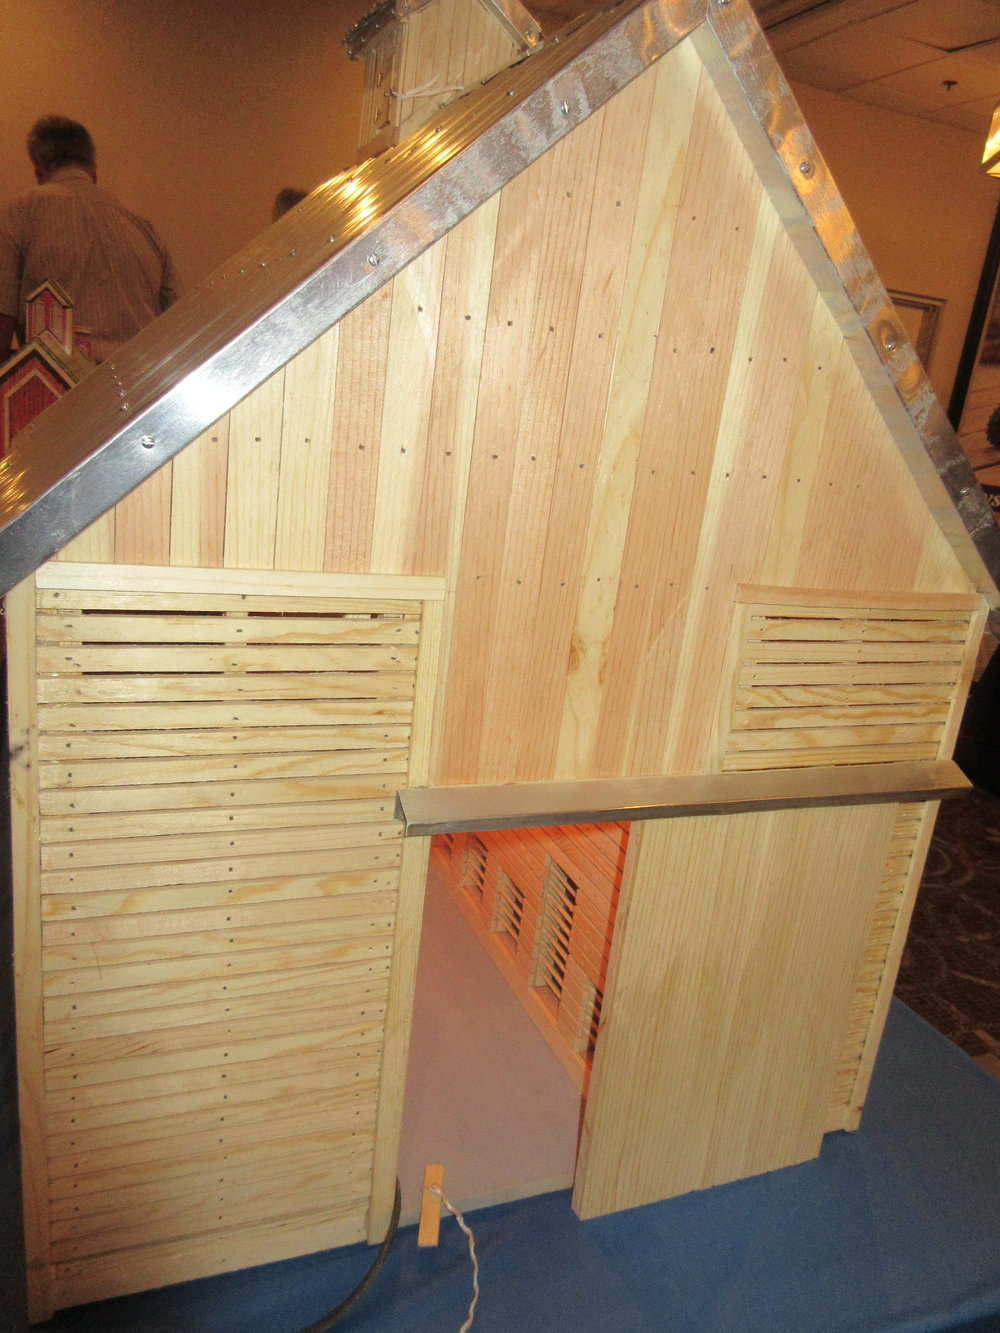 This hand-built corn crib sold at auction at the Gateway Mid-America Toy Show.